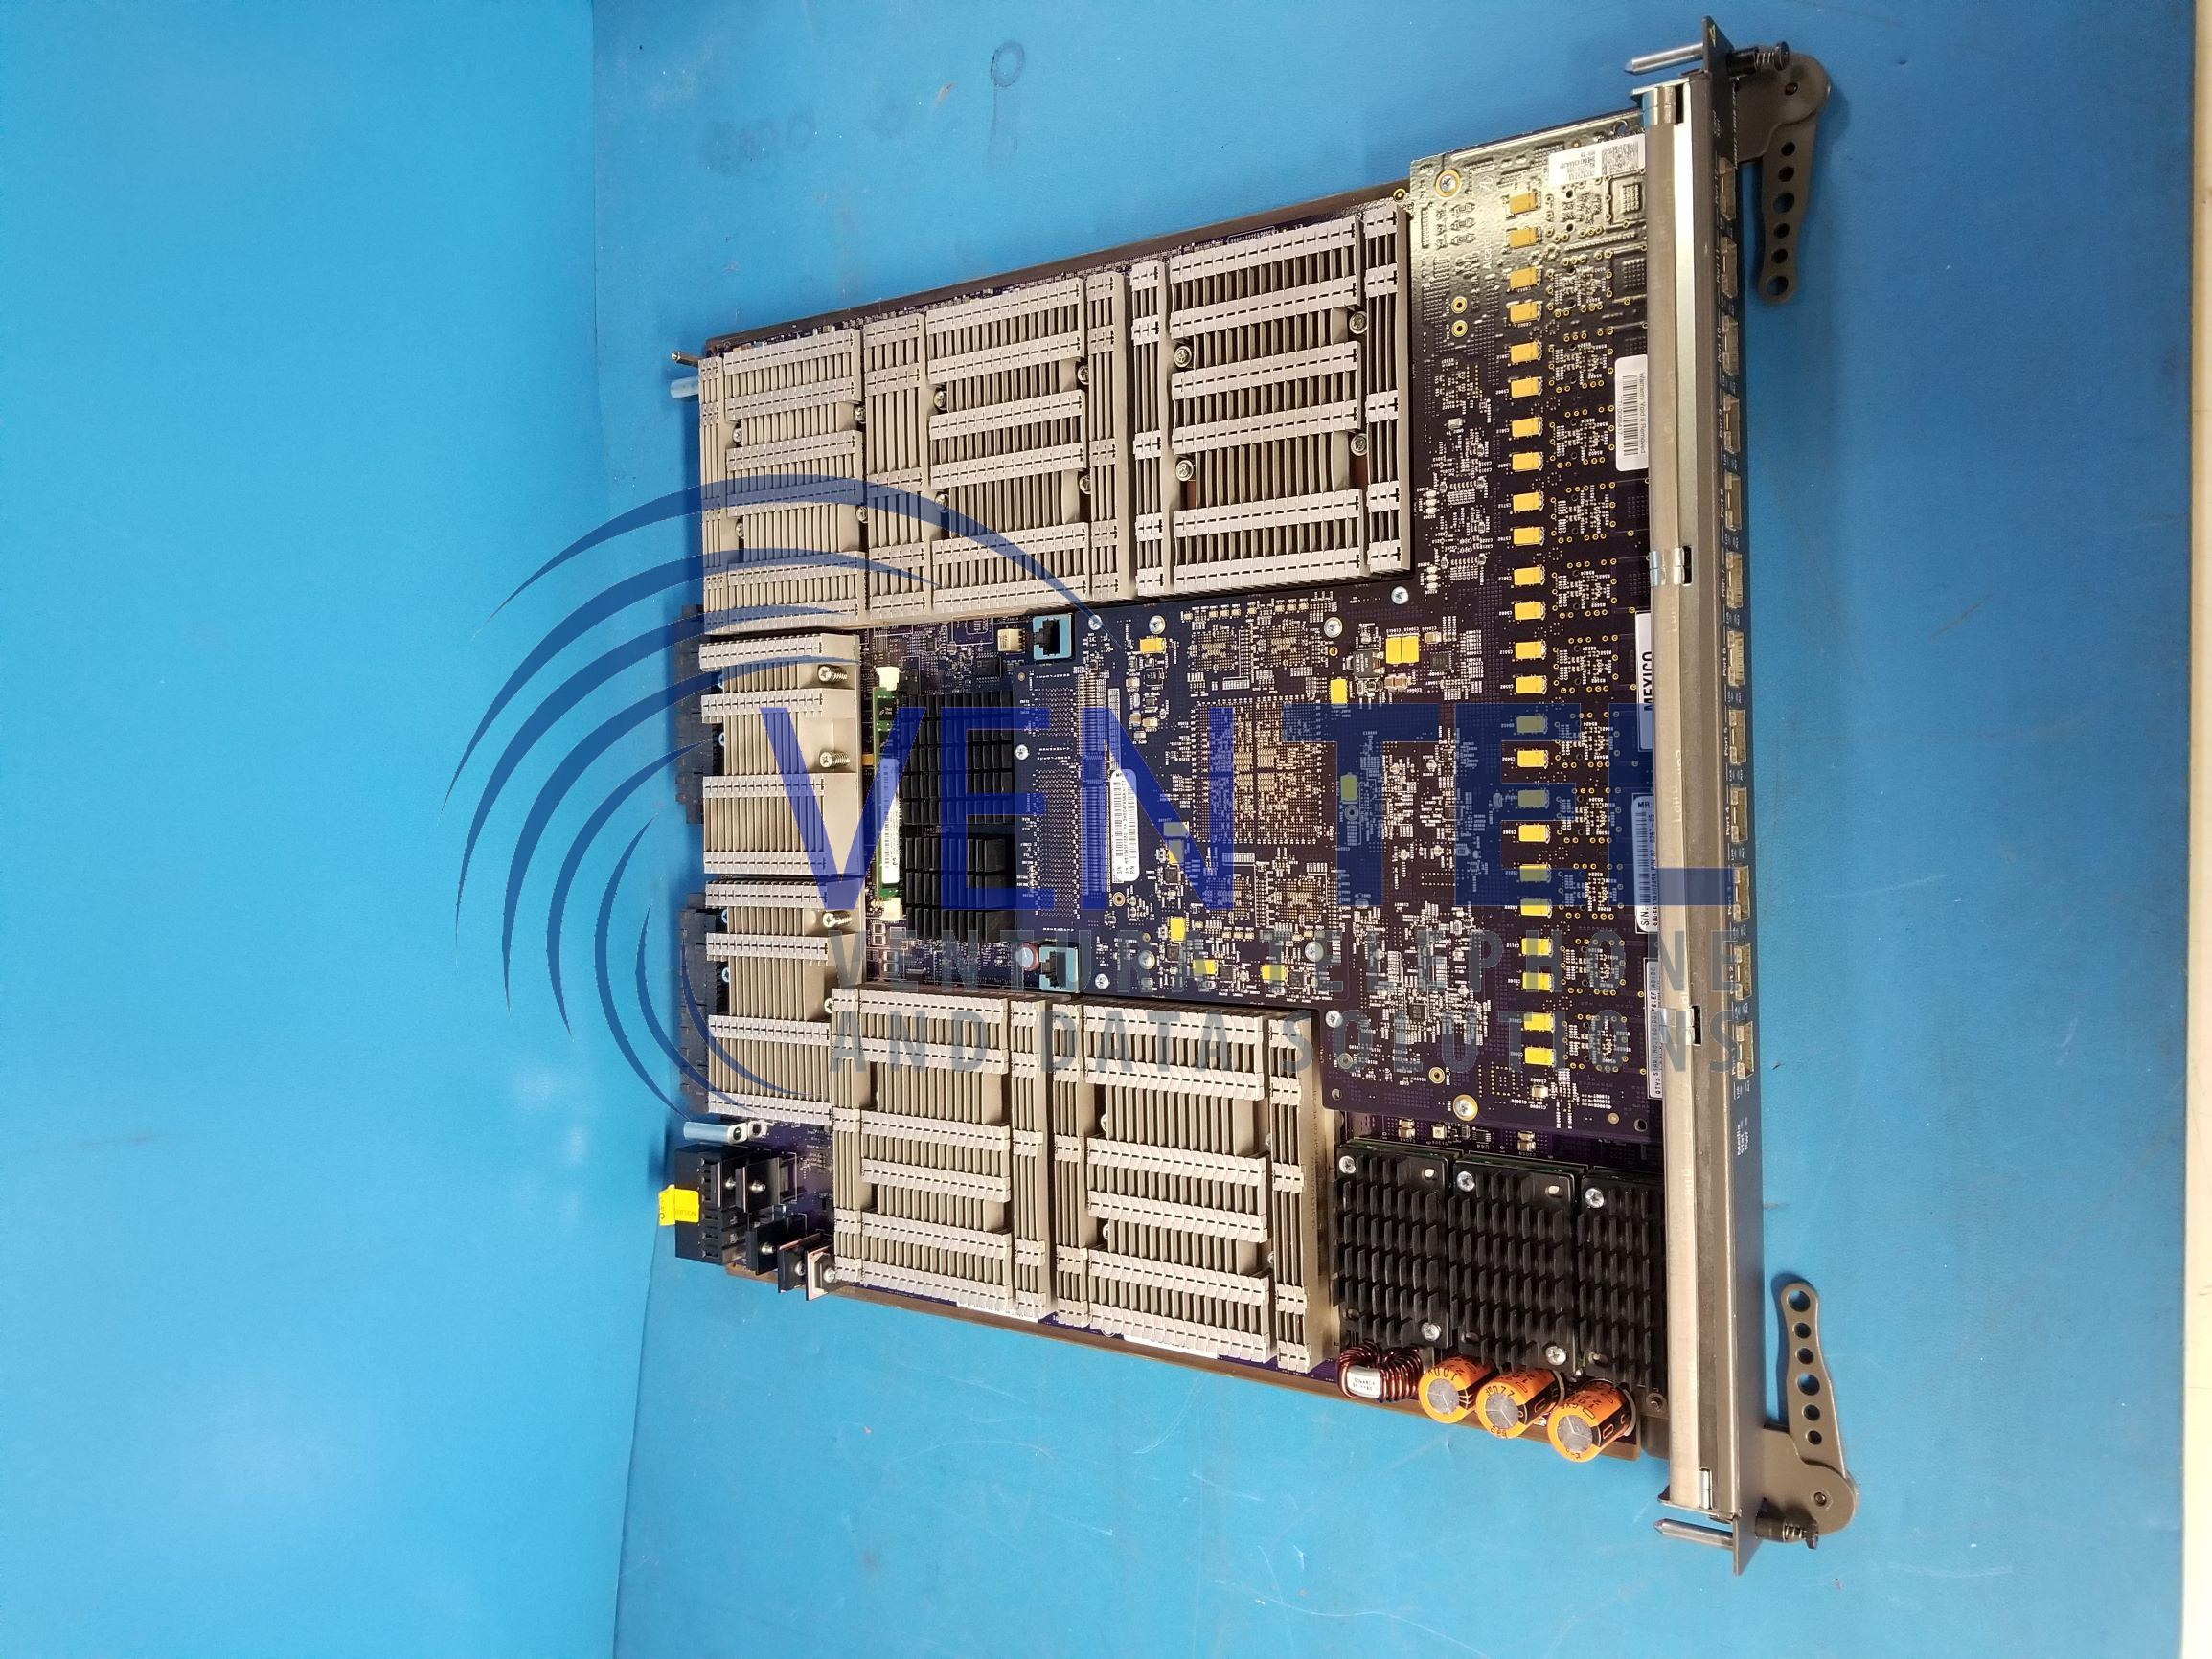 ALCATEL-LUCENT 7750-SR-12 - Ventura Telephone